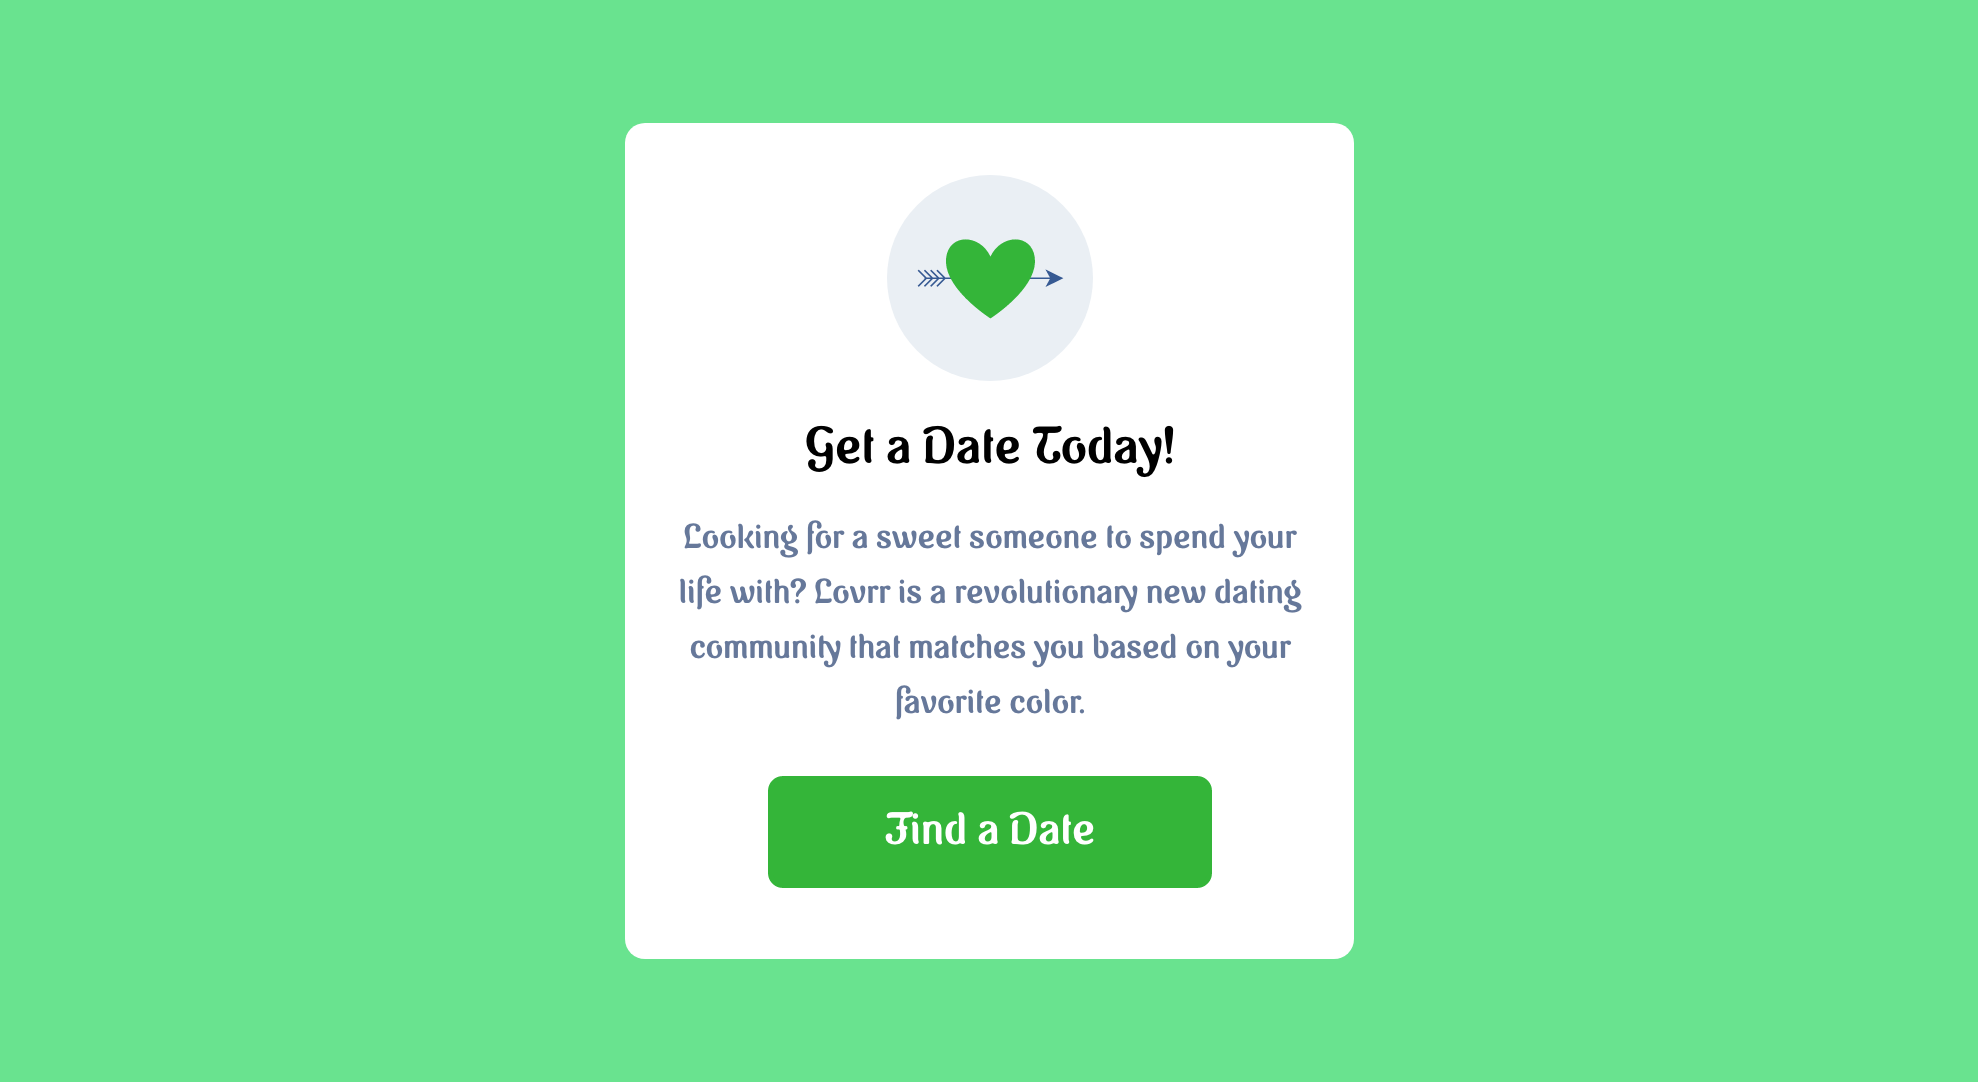 Get a date today—Find a date!